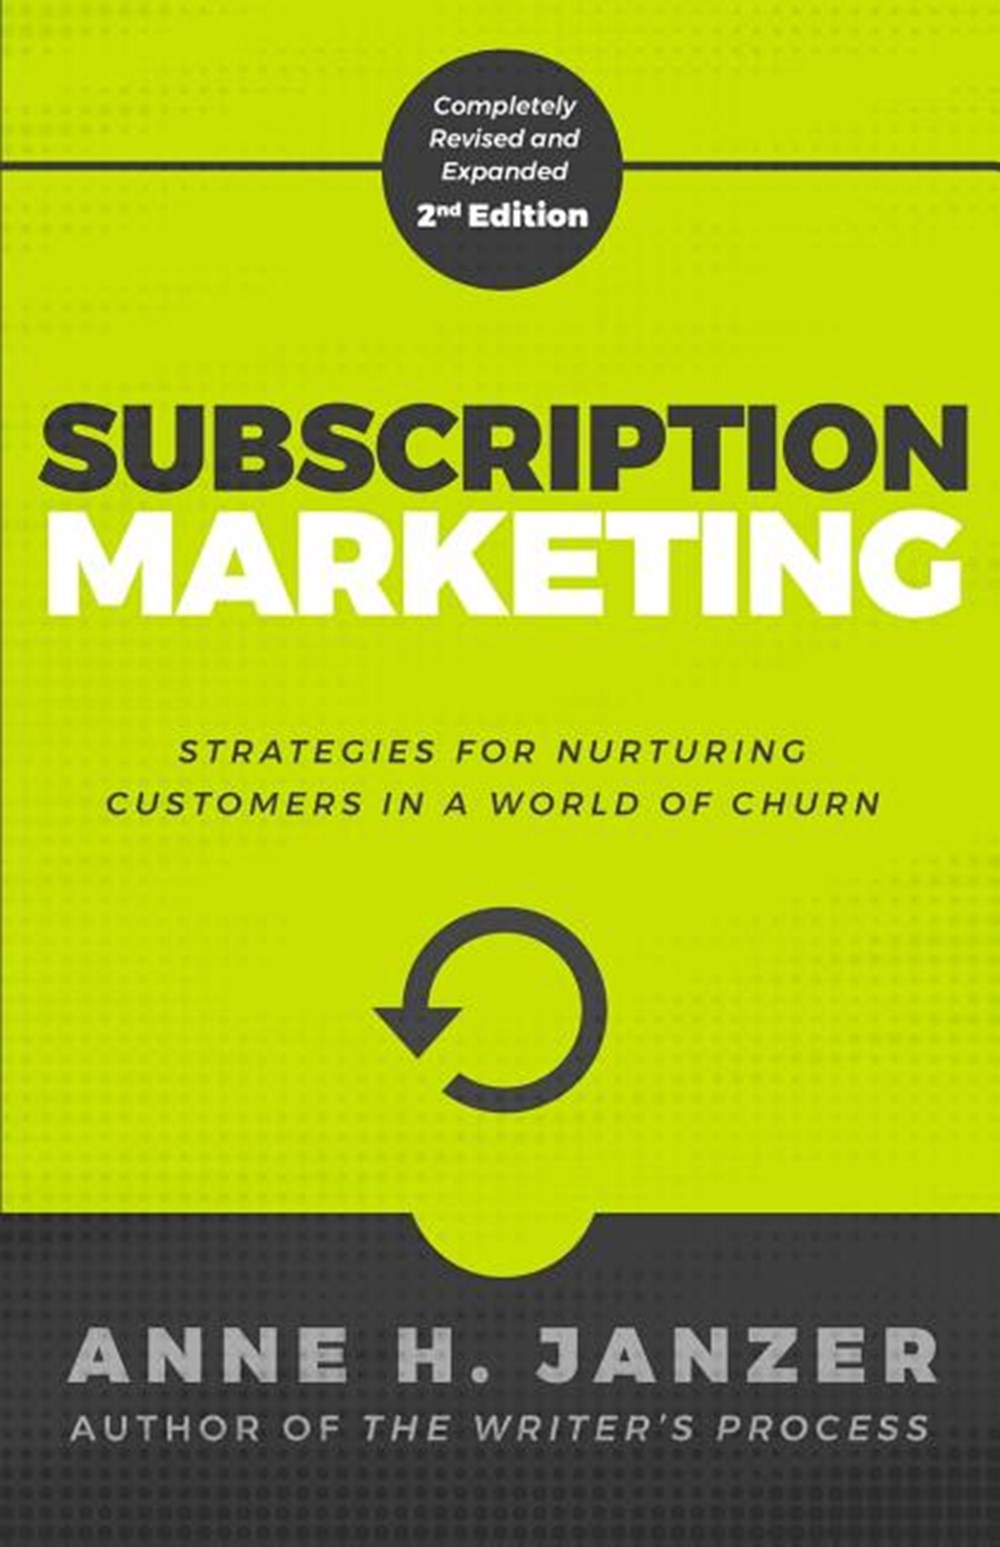 Subscription Marketing Strategies for Nurturing Customers in a World of Churn (Revised, Expanded)